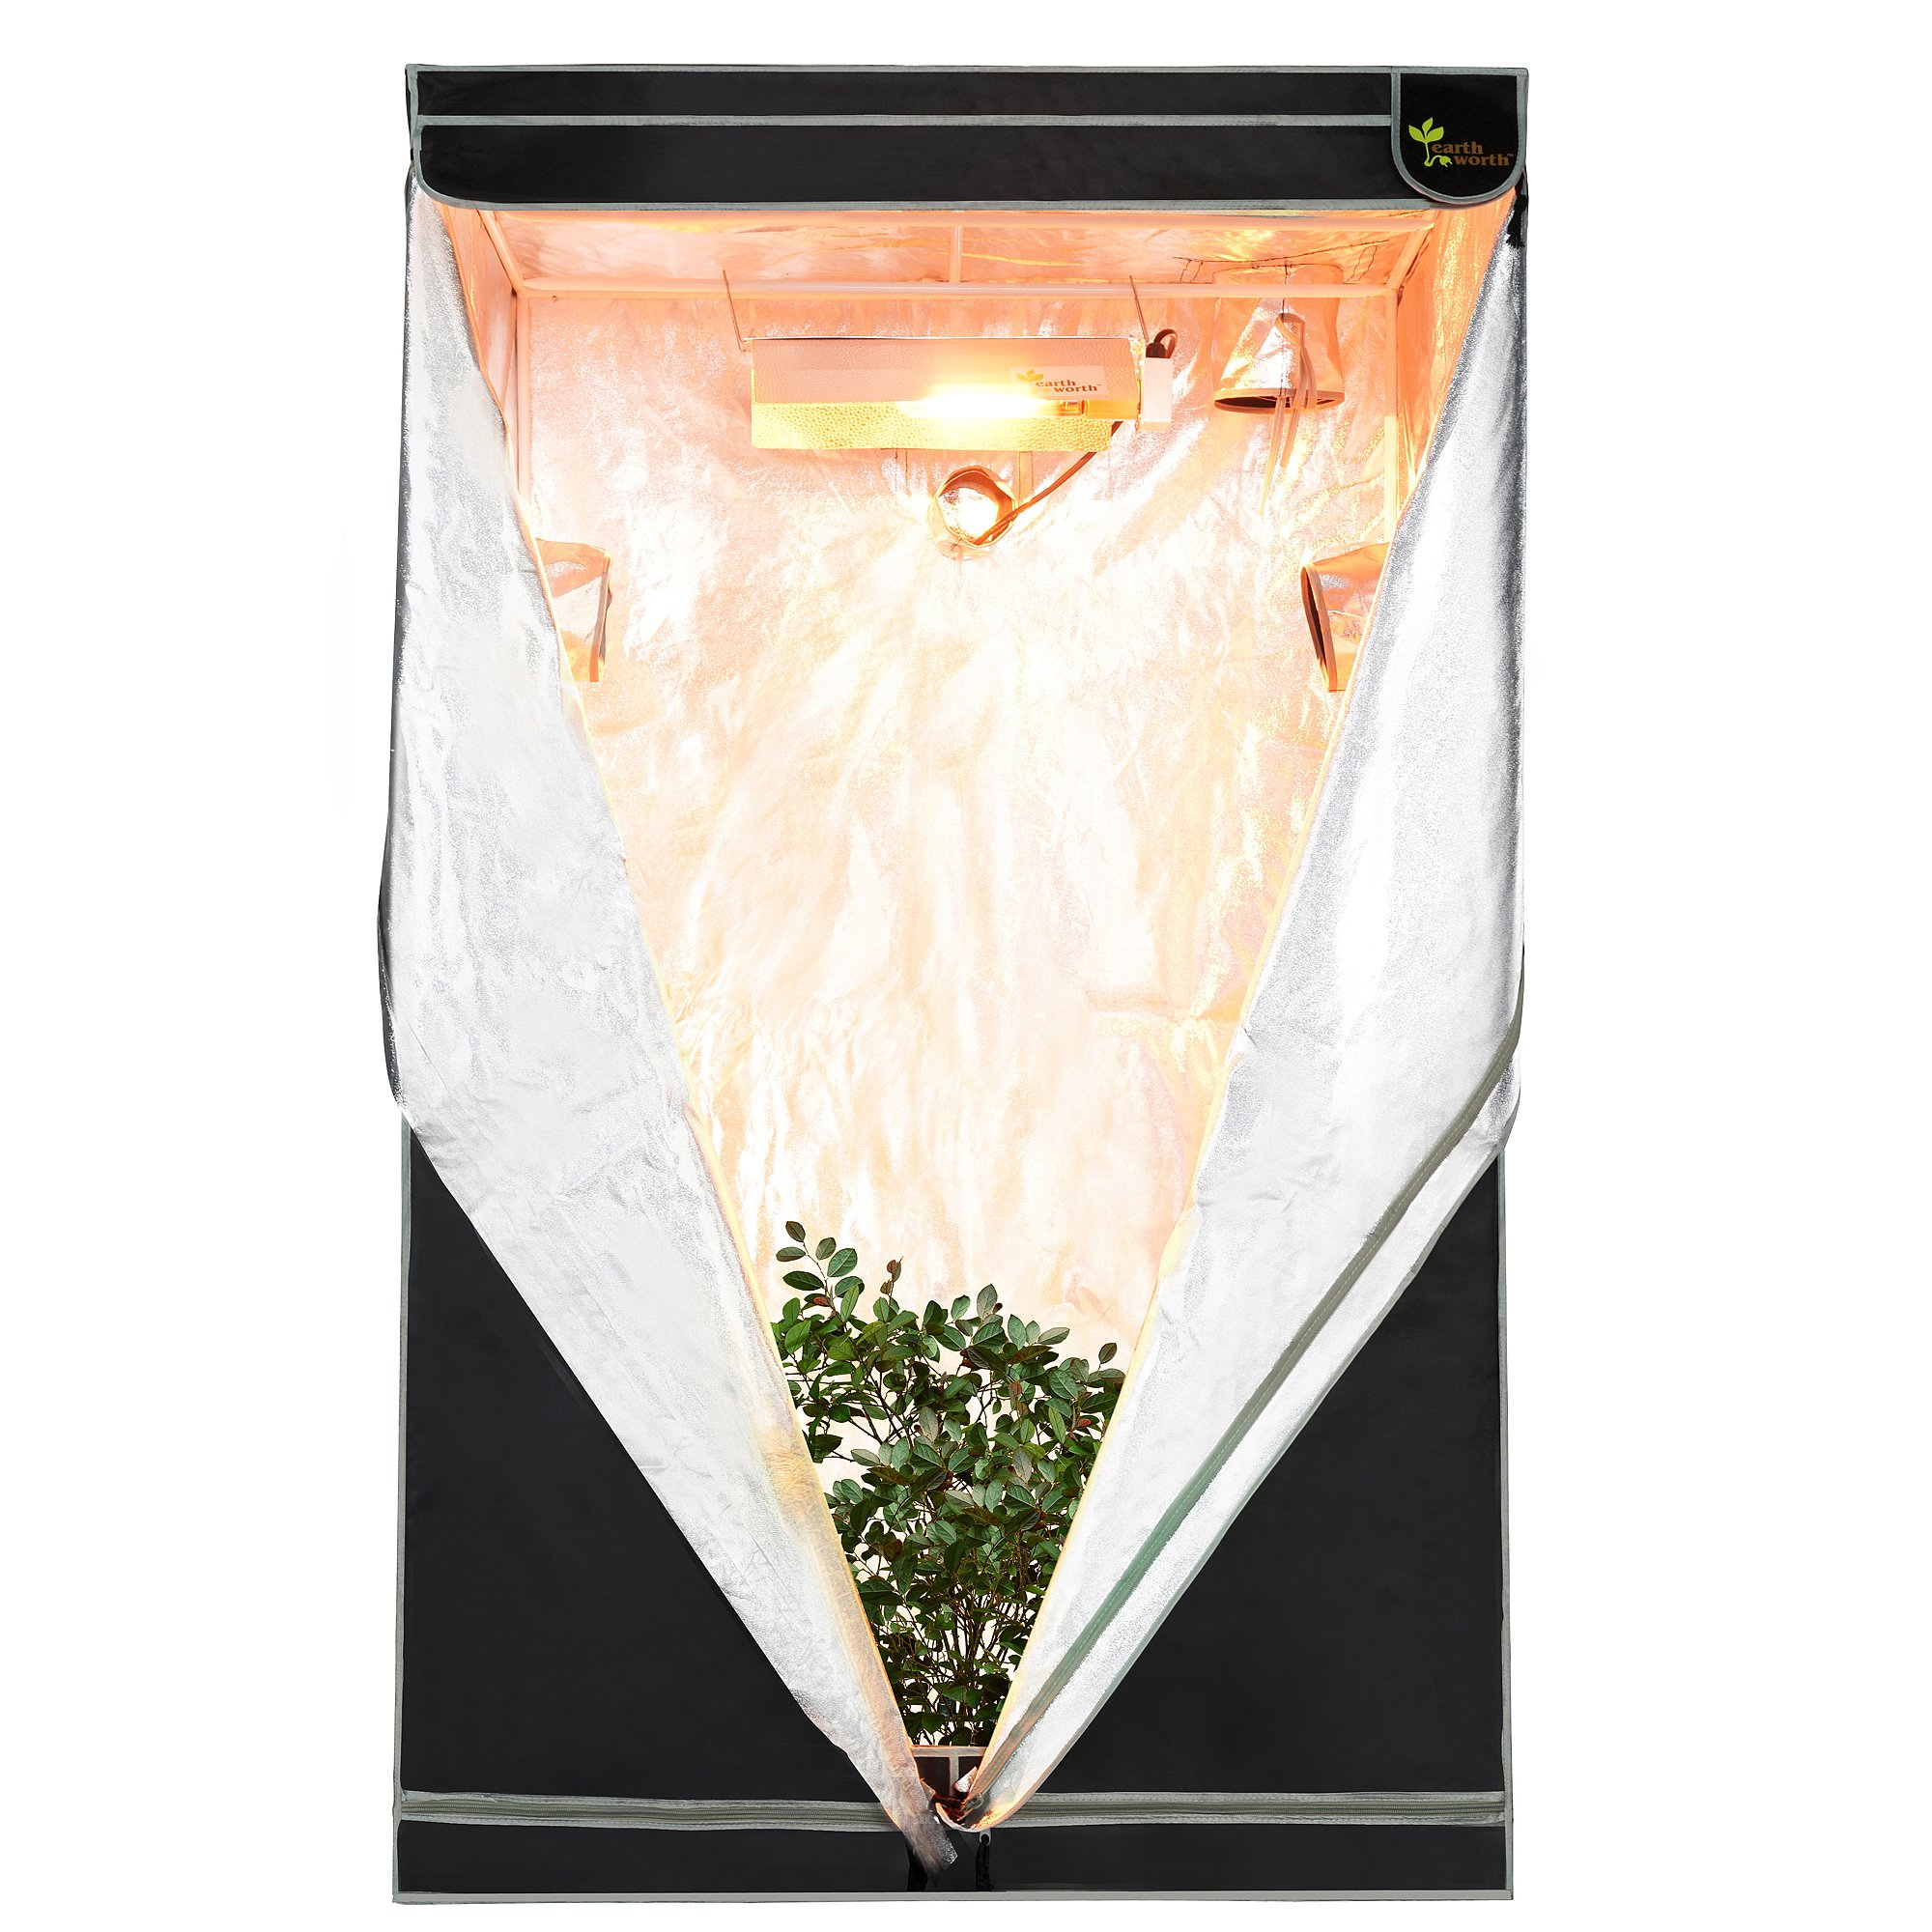 Earth Worth 48''X48''X78'' Mylar Hydro Shanty Hydroponics Indoor Grow Tent - Earth Worth Quality at an Affordable Price!